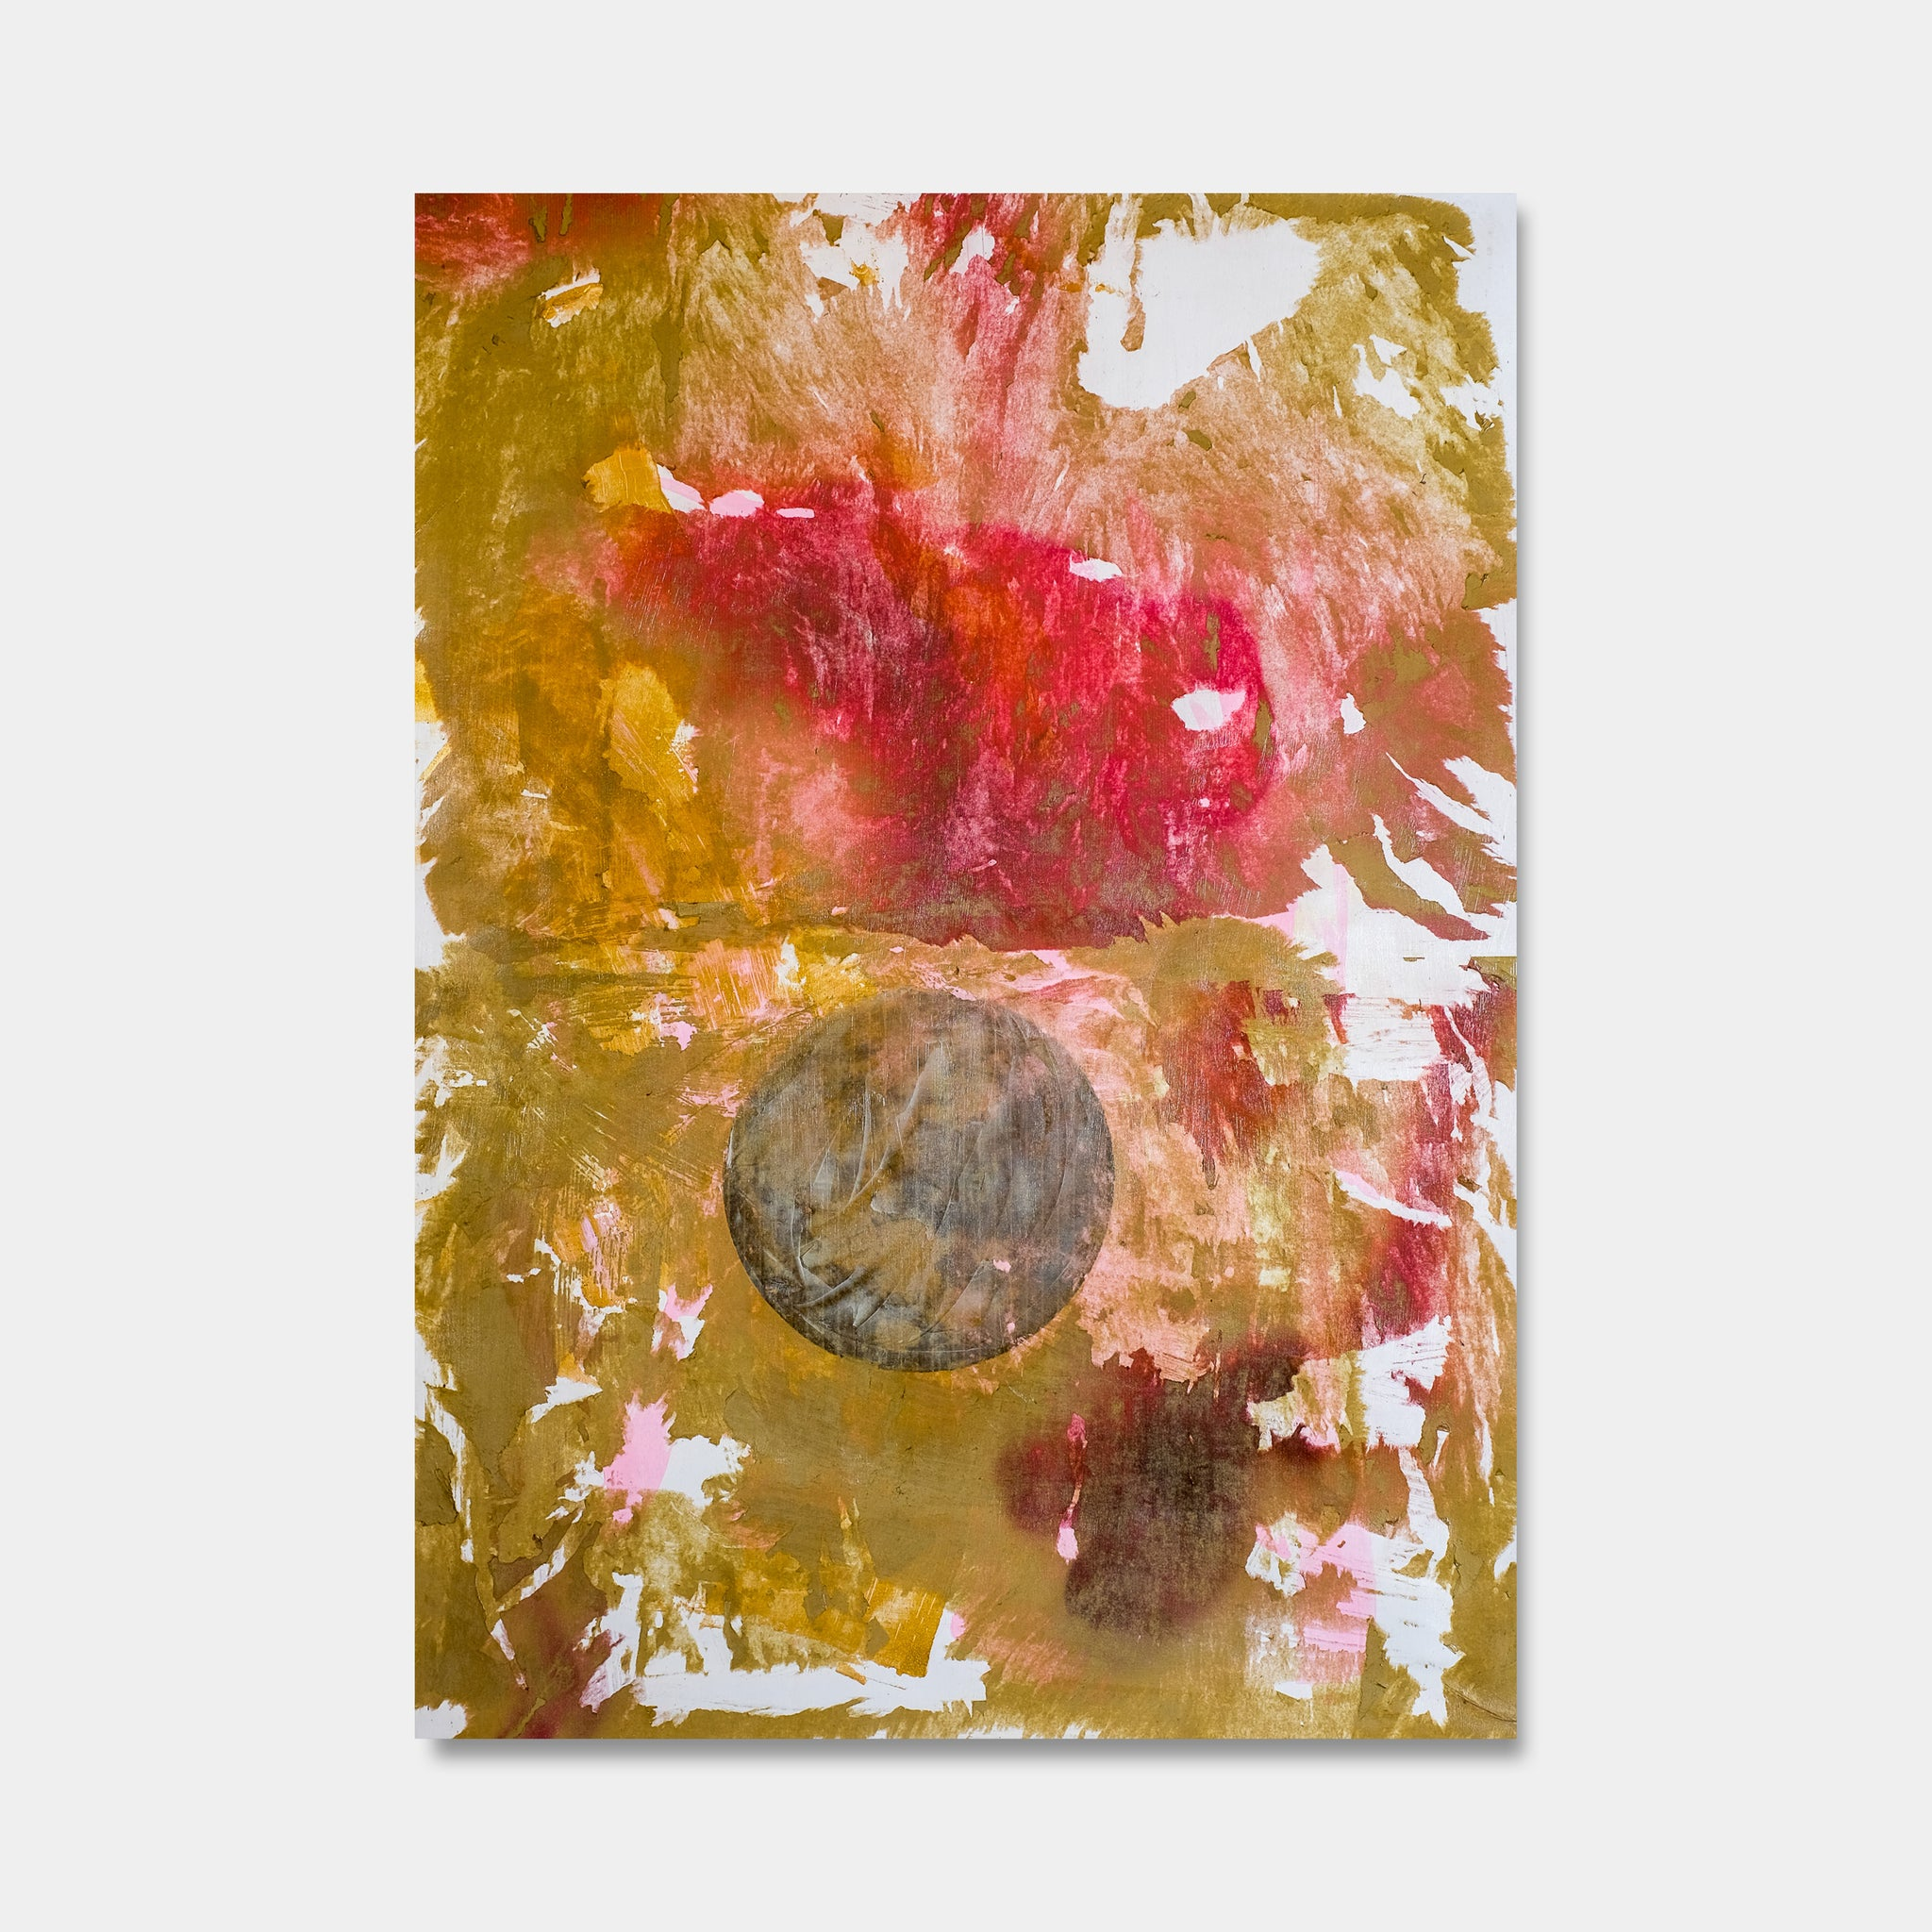 Artsuite - Moons Equilibrium 2 - Original artwork by Tim Lytvinenko.  Abstract mixed media of the moon in gold, red, and white metallic photo paper, paint, and gel on canvas.  55 x 45  inches.